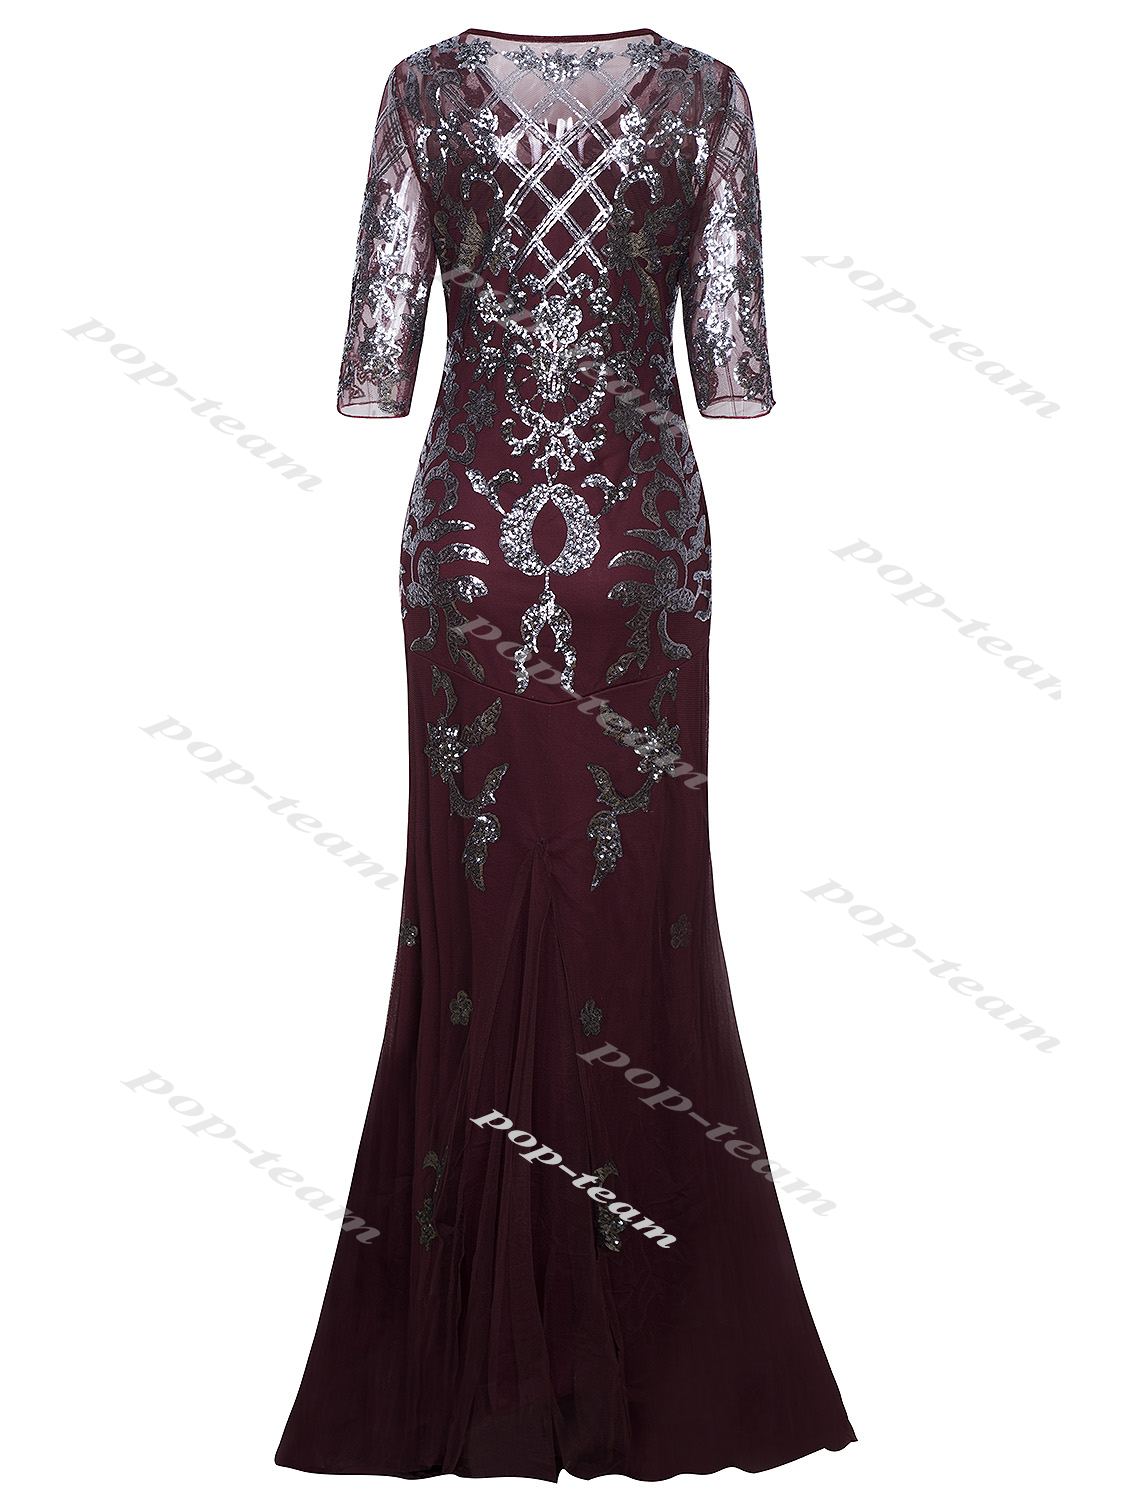 Awesome Mermaid Costume 1920s Flapper Gatsby Party Long Evening Maxi ...